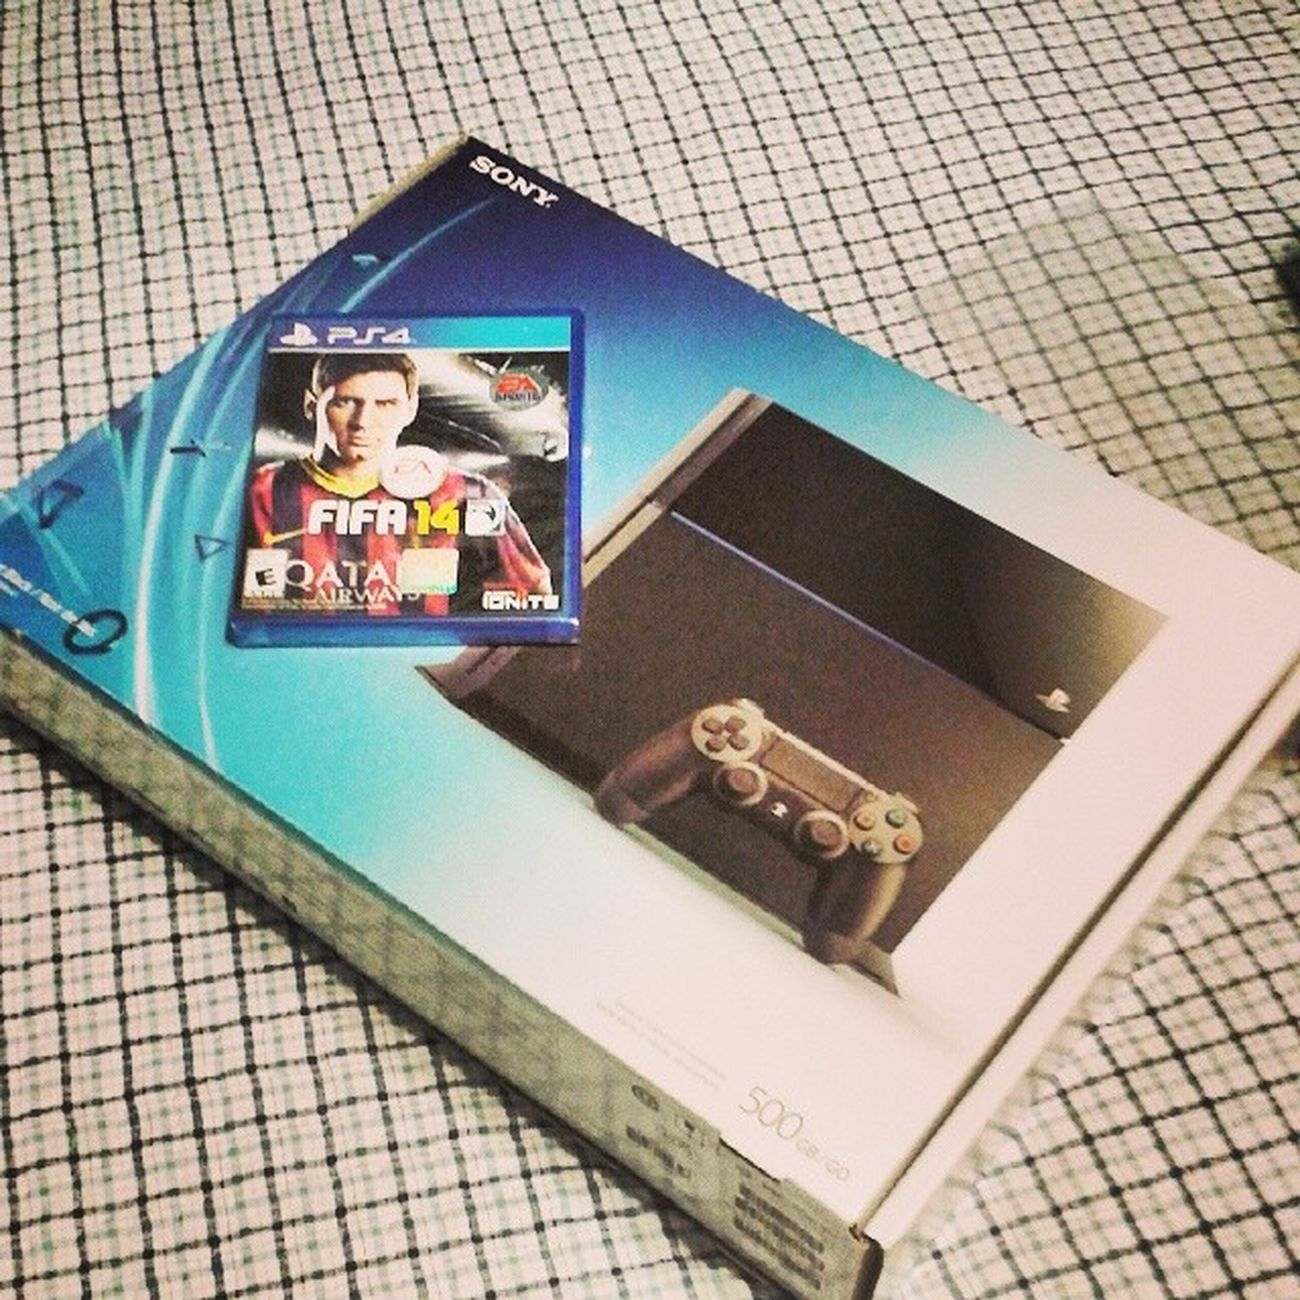 Haha I'm going to be killing everyone in every game Comment your gamer tag Imhype LetsGetIt PS4 Playstation4 brandnew gamerlife imgoingto killit fifa14 2014 worldcup represent soccer brasil birthdaypresent frommommy thanksmommy yourethebest